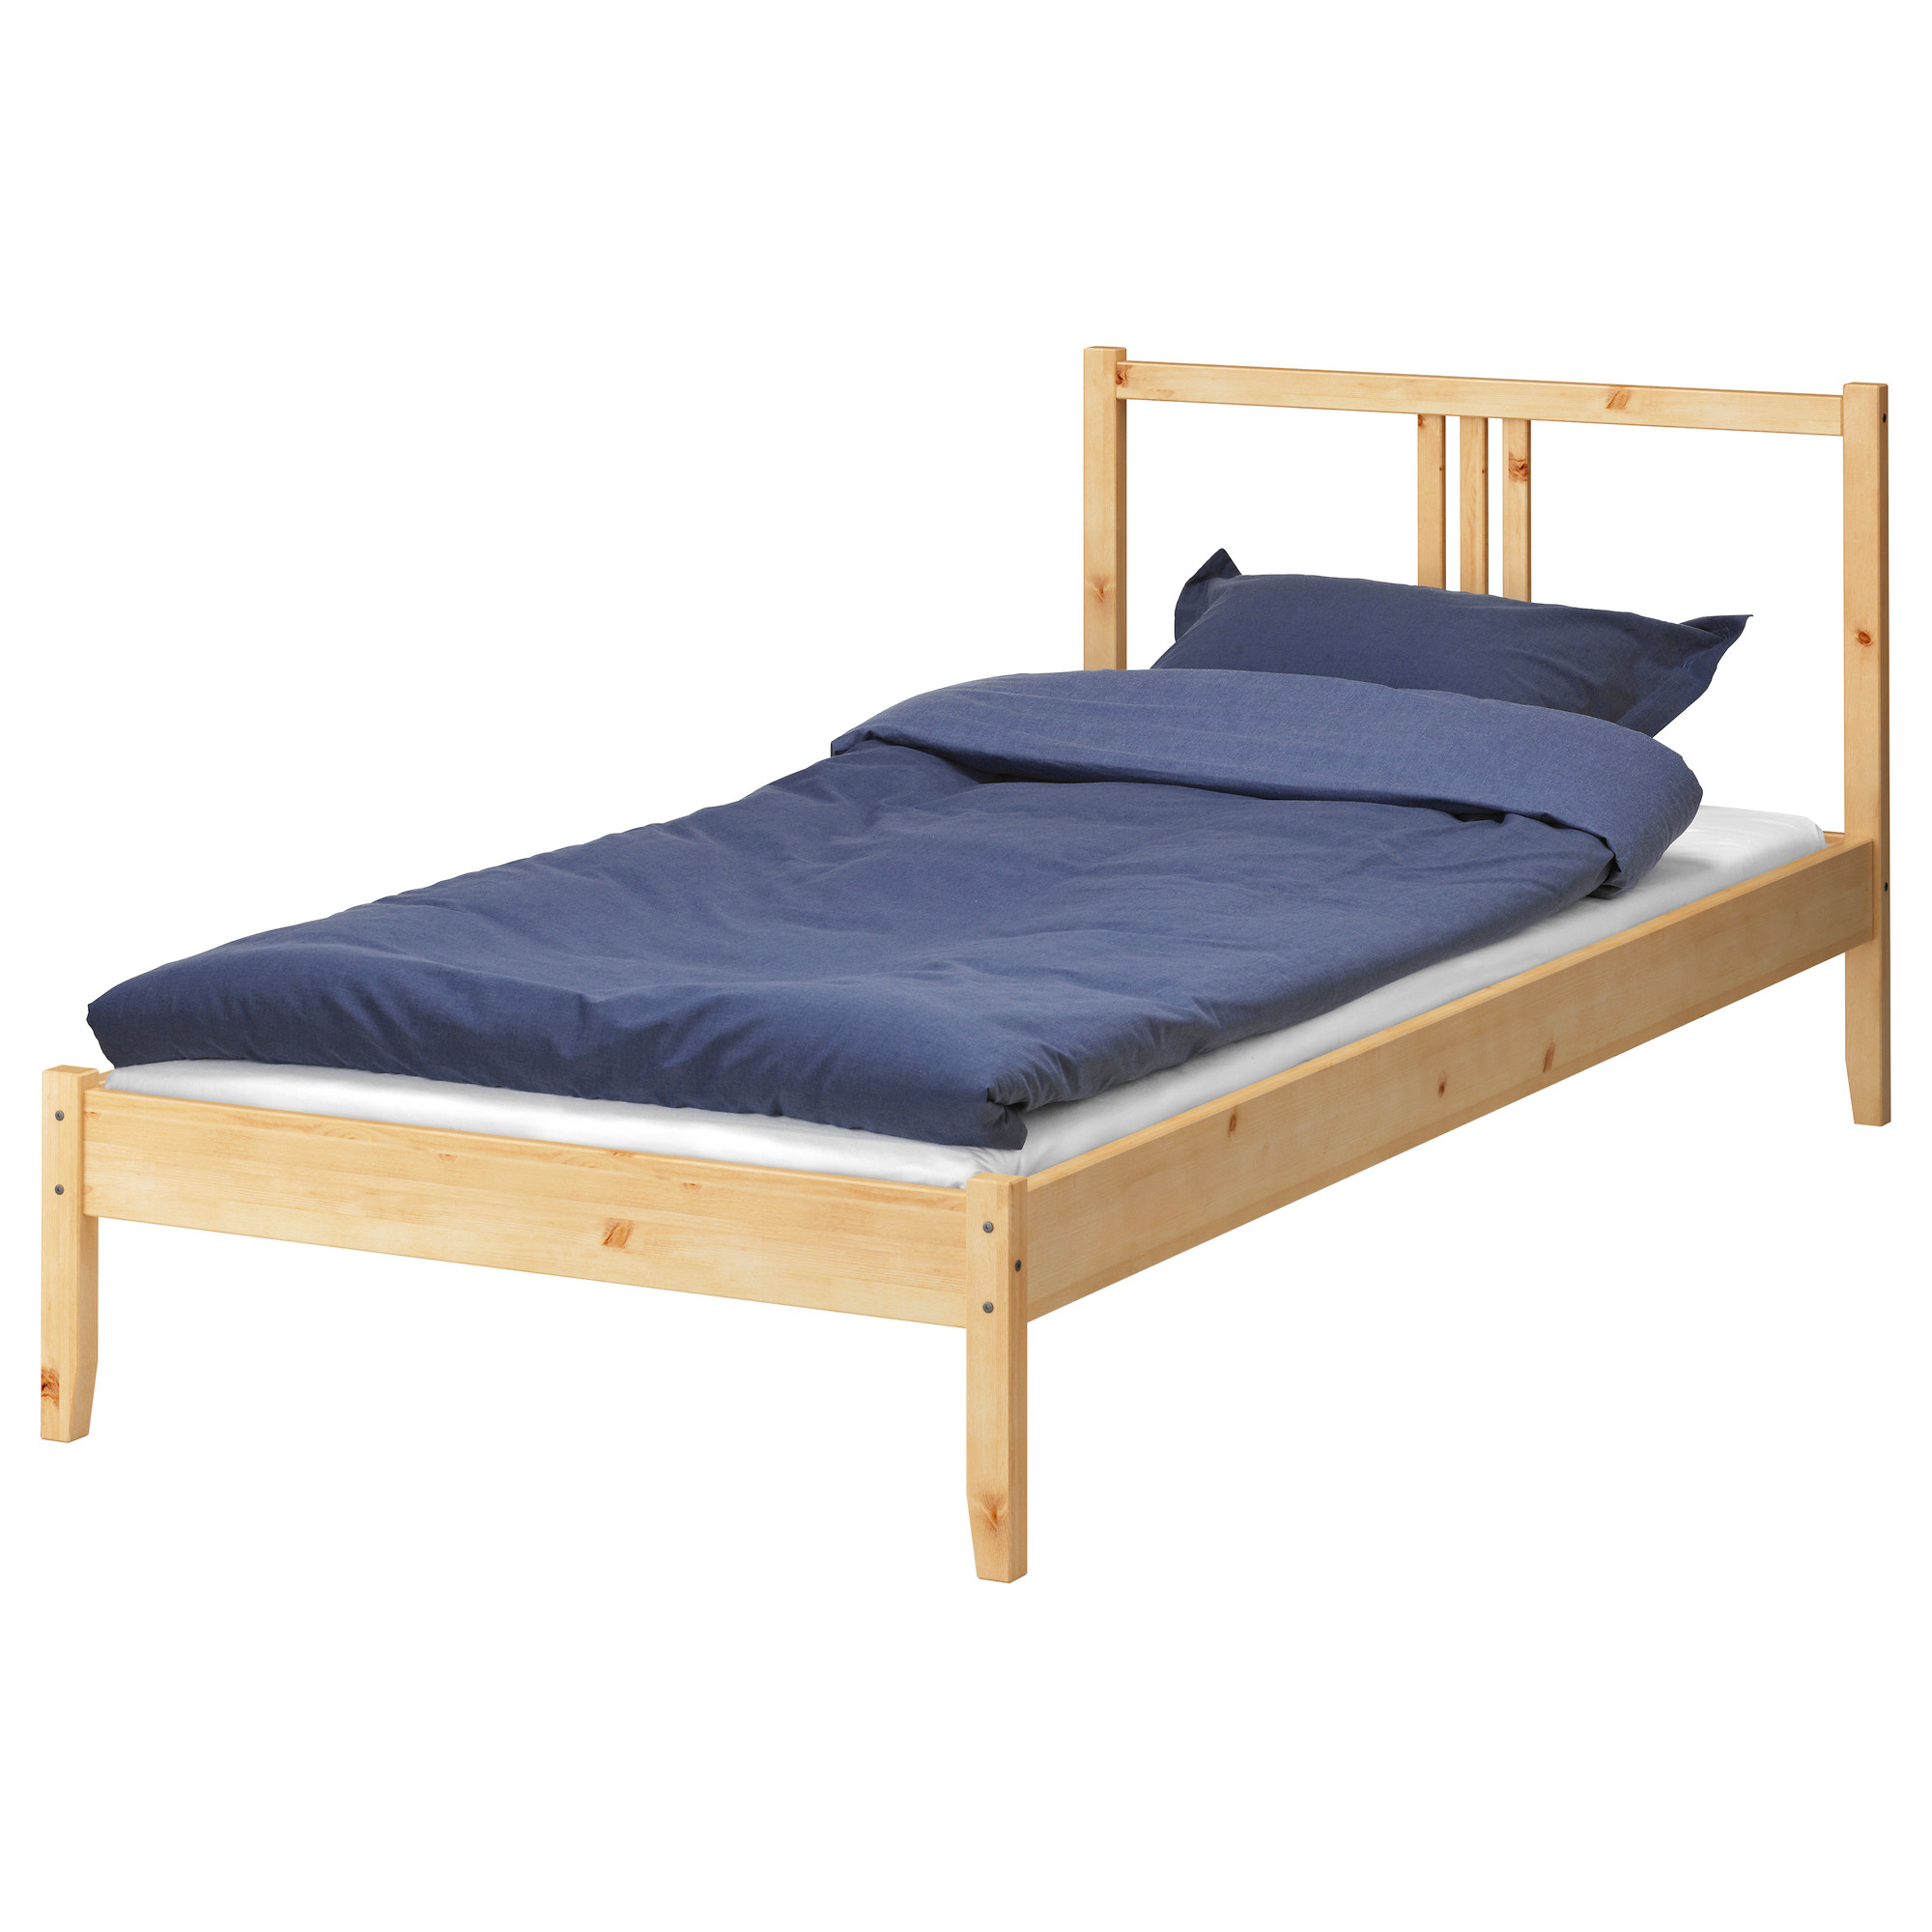 Cheap Futon Beds | Cheap Bed Sets Queen | Nyvoll Bed